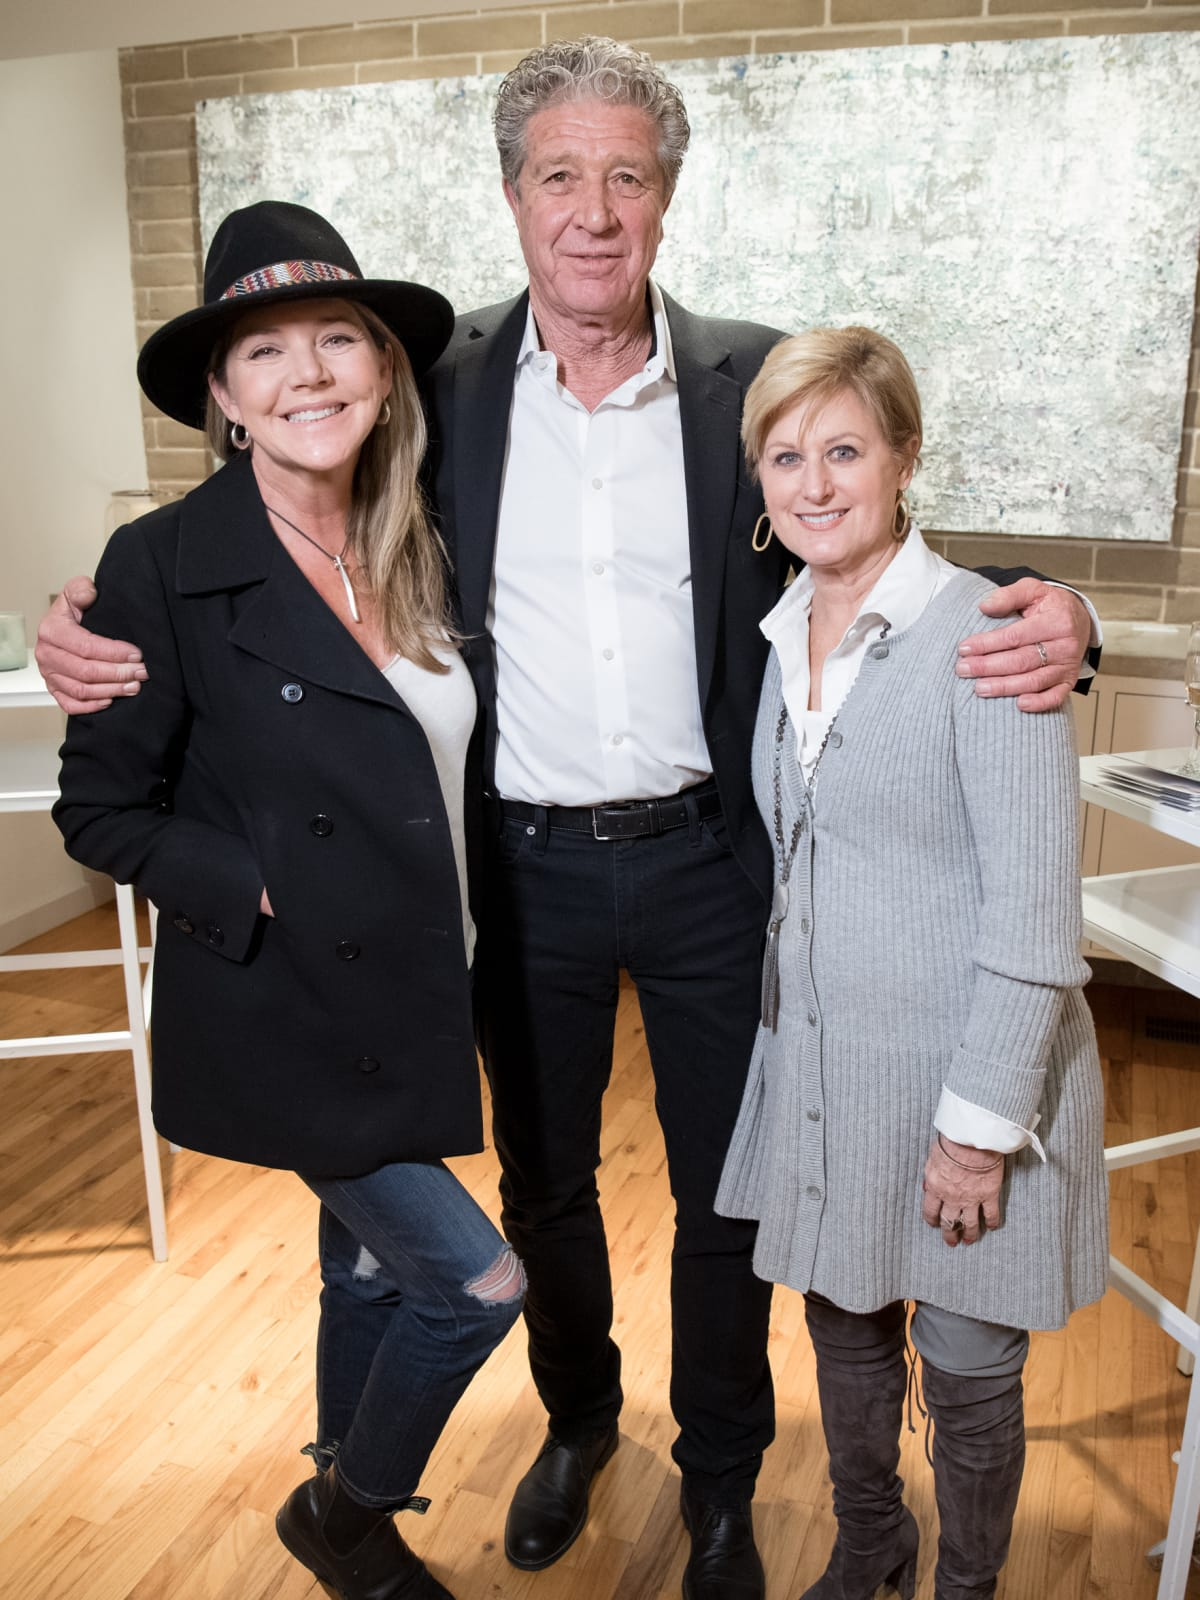 Dallas, LR Art House opening, January 2018, Mary Amons, Brad Hillinger, Kathy Leonard